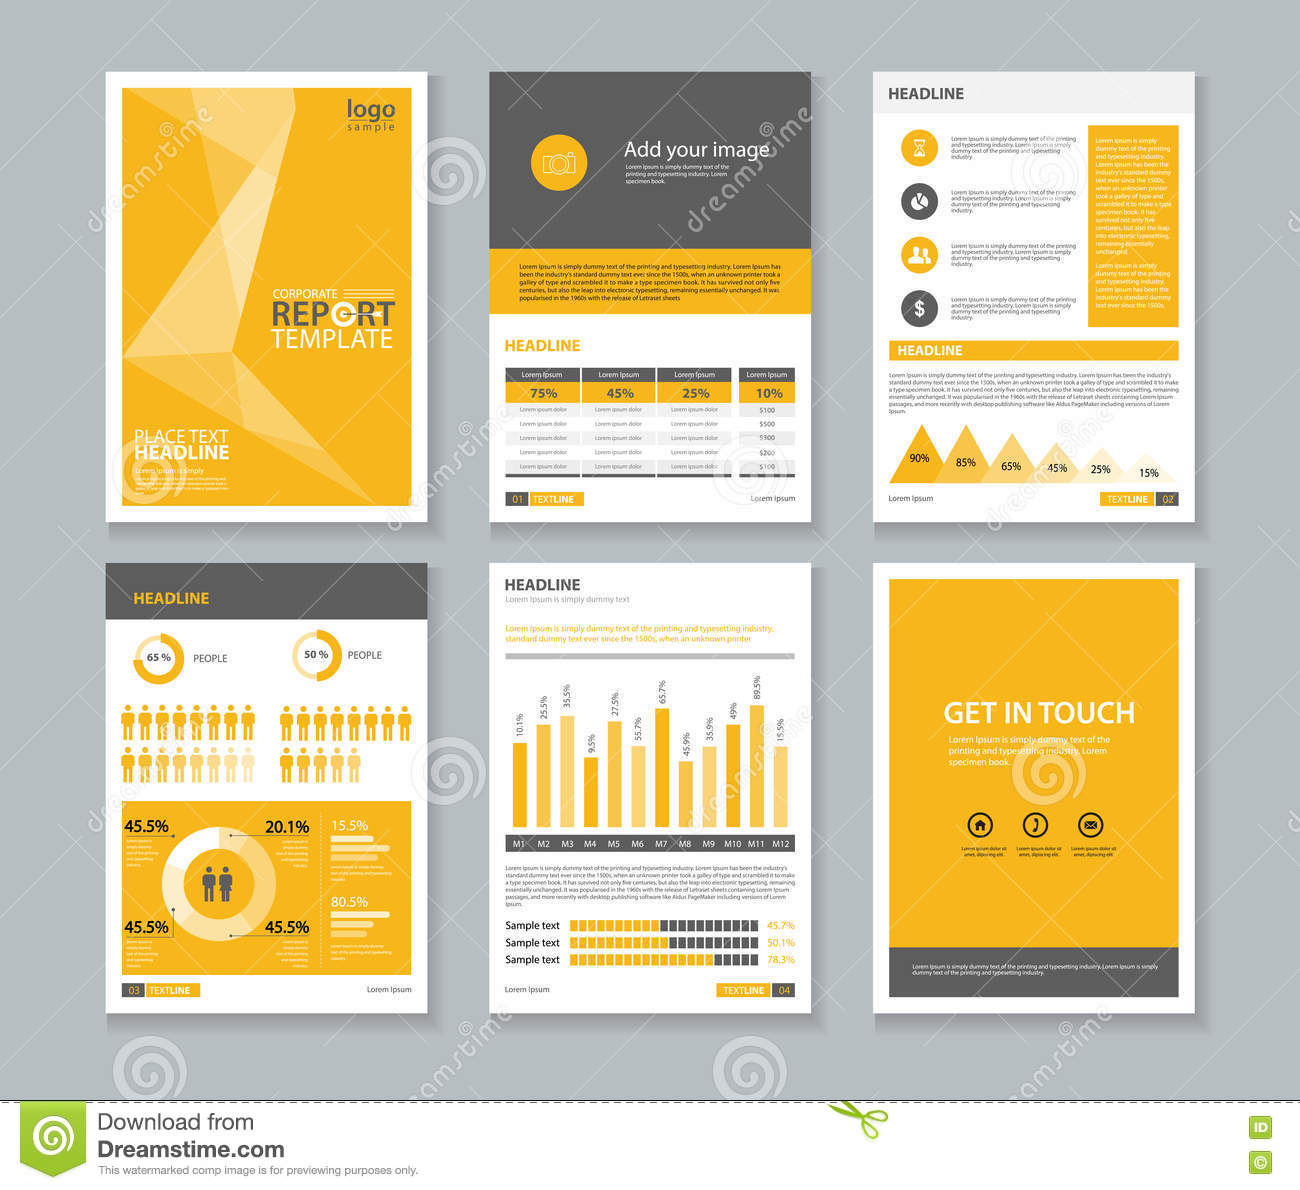 Template Company Profile Annual Report Brochure Flyerlayout - Company profile brochure template